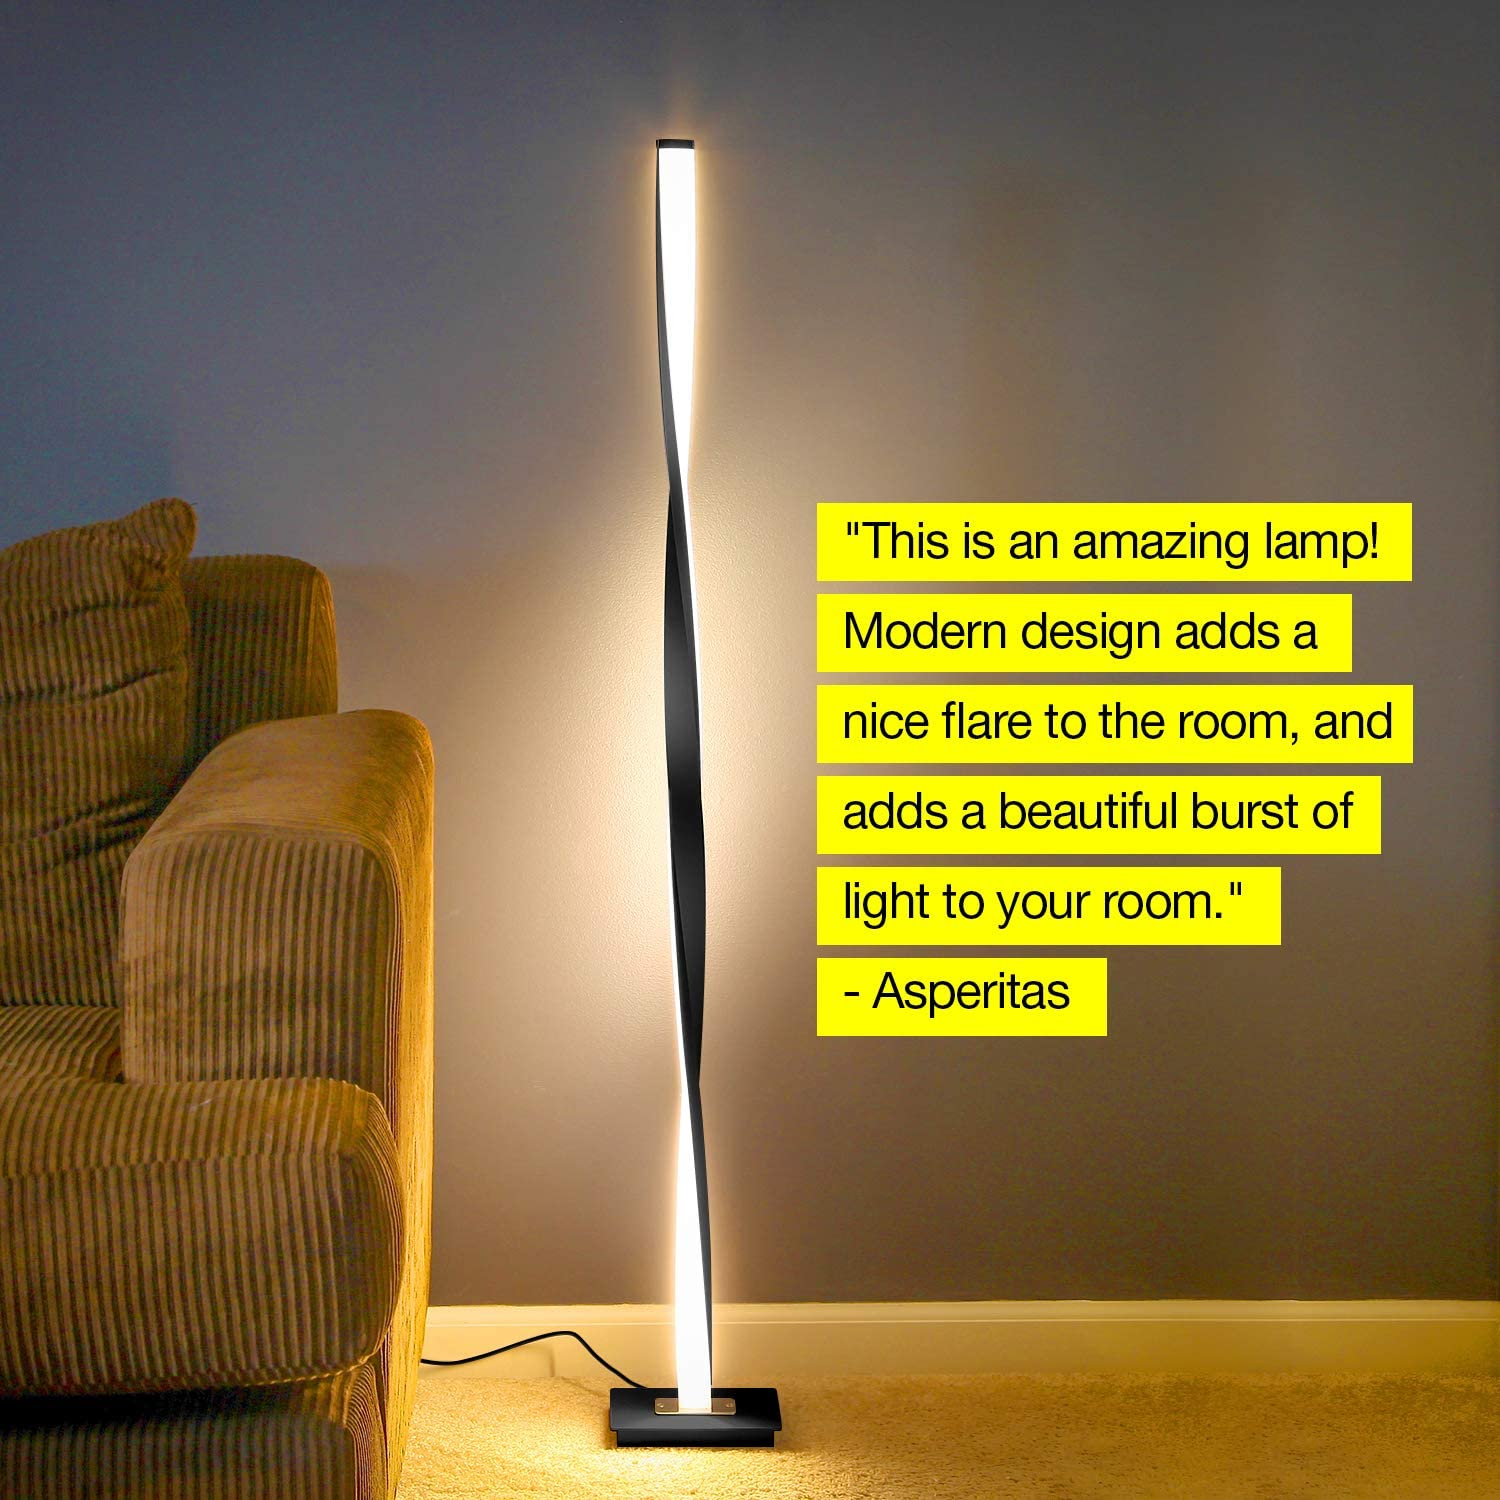 Classic Black Brightech Helix LED Floor Lamp for Living Rooms Get Compliments: Modern Standing Pole Light for Family Rooms Bedrooms /& Offices Dimmable Contemporary Lighting Bright